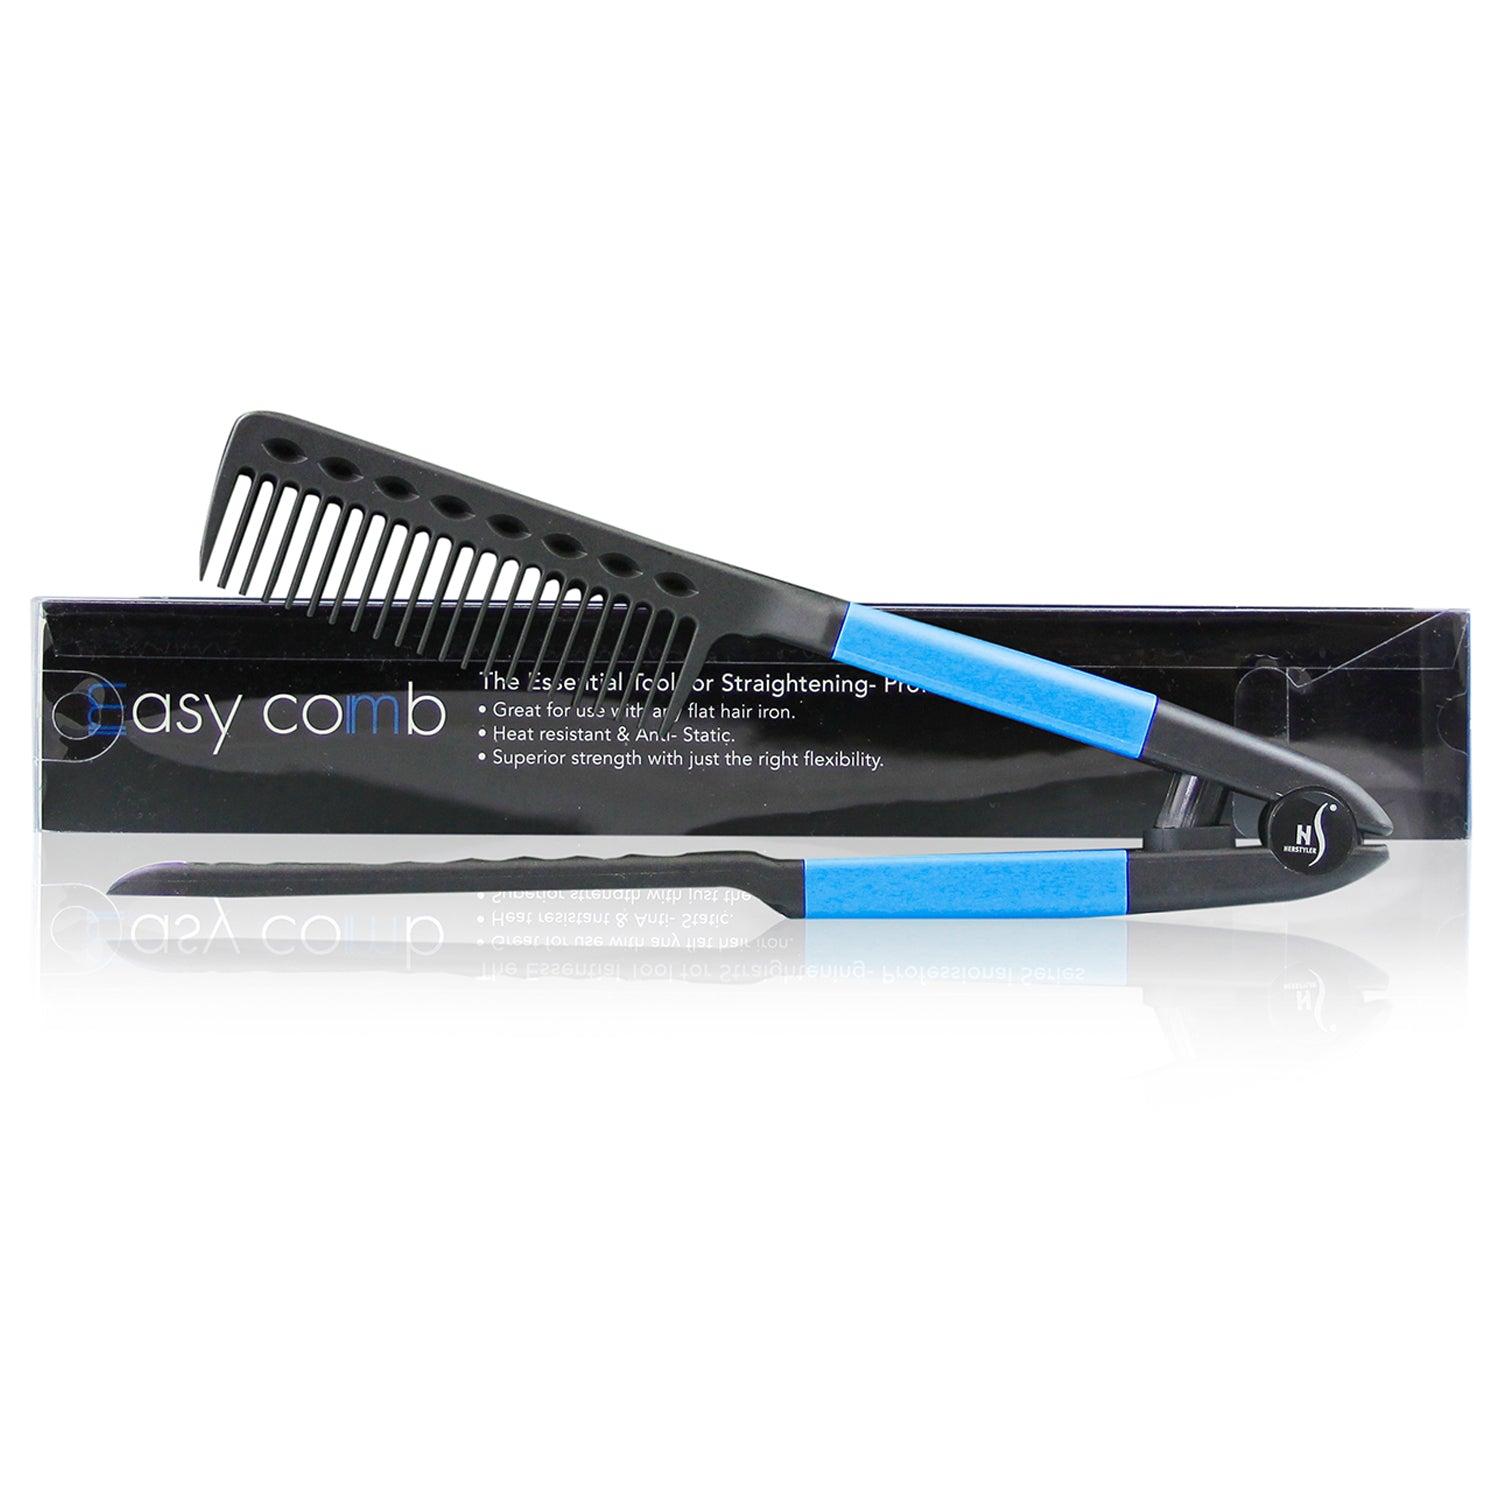 herstyler straightening comb for hair blue